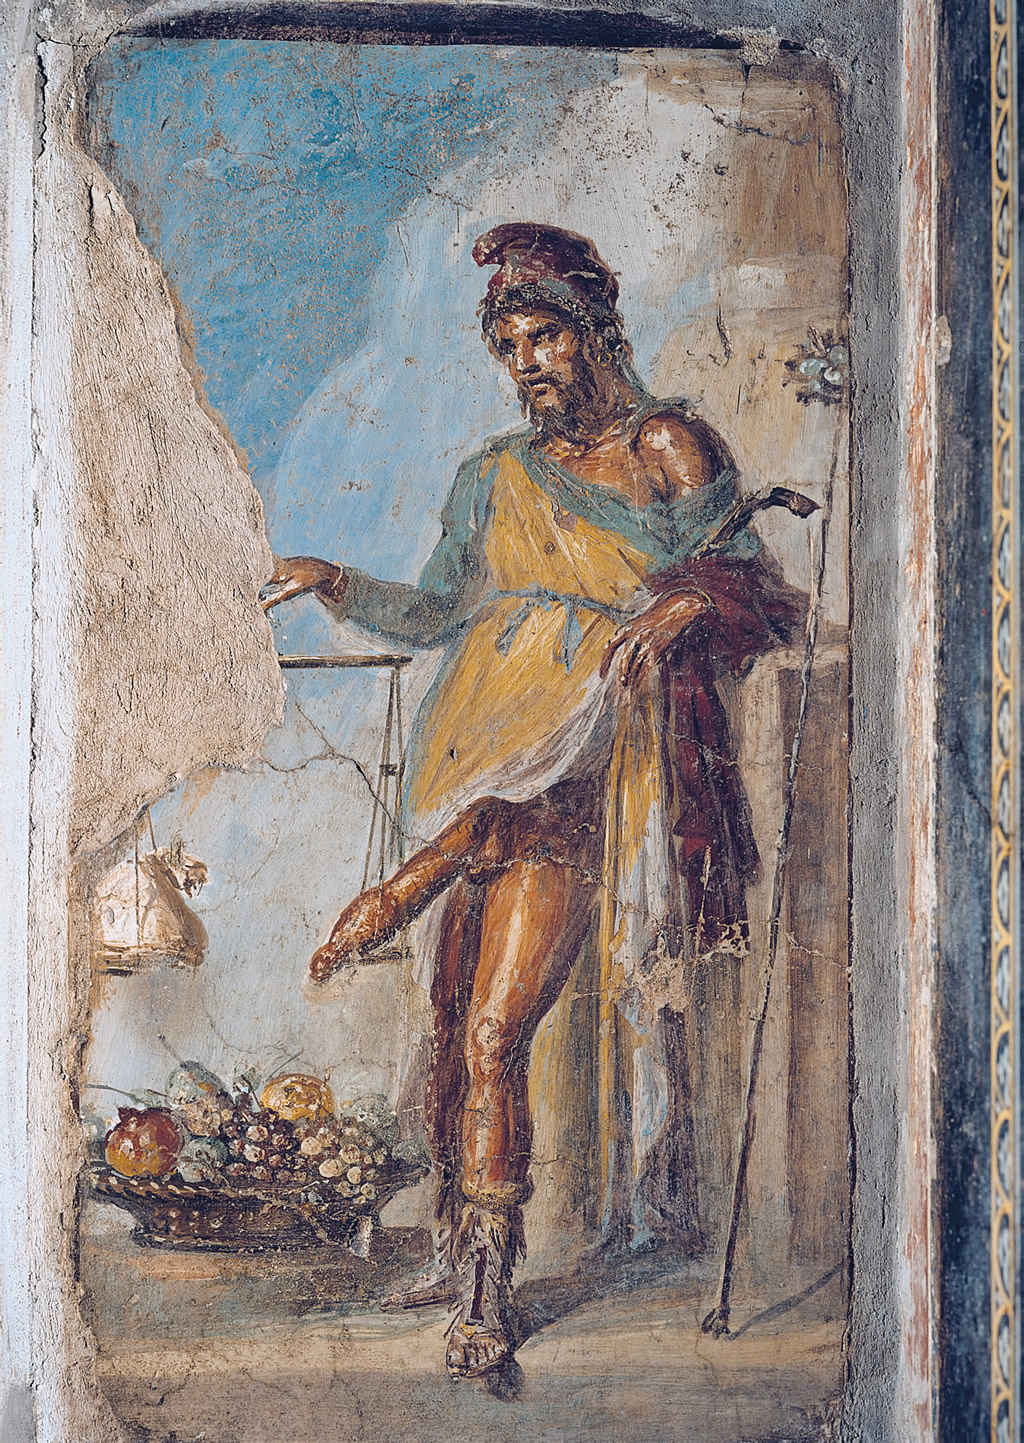 Priapus weighing his male member. House of the vetti.